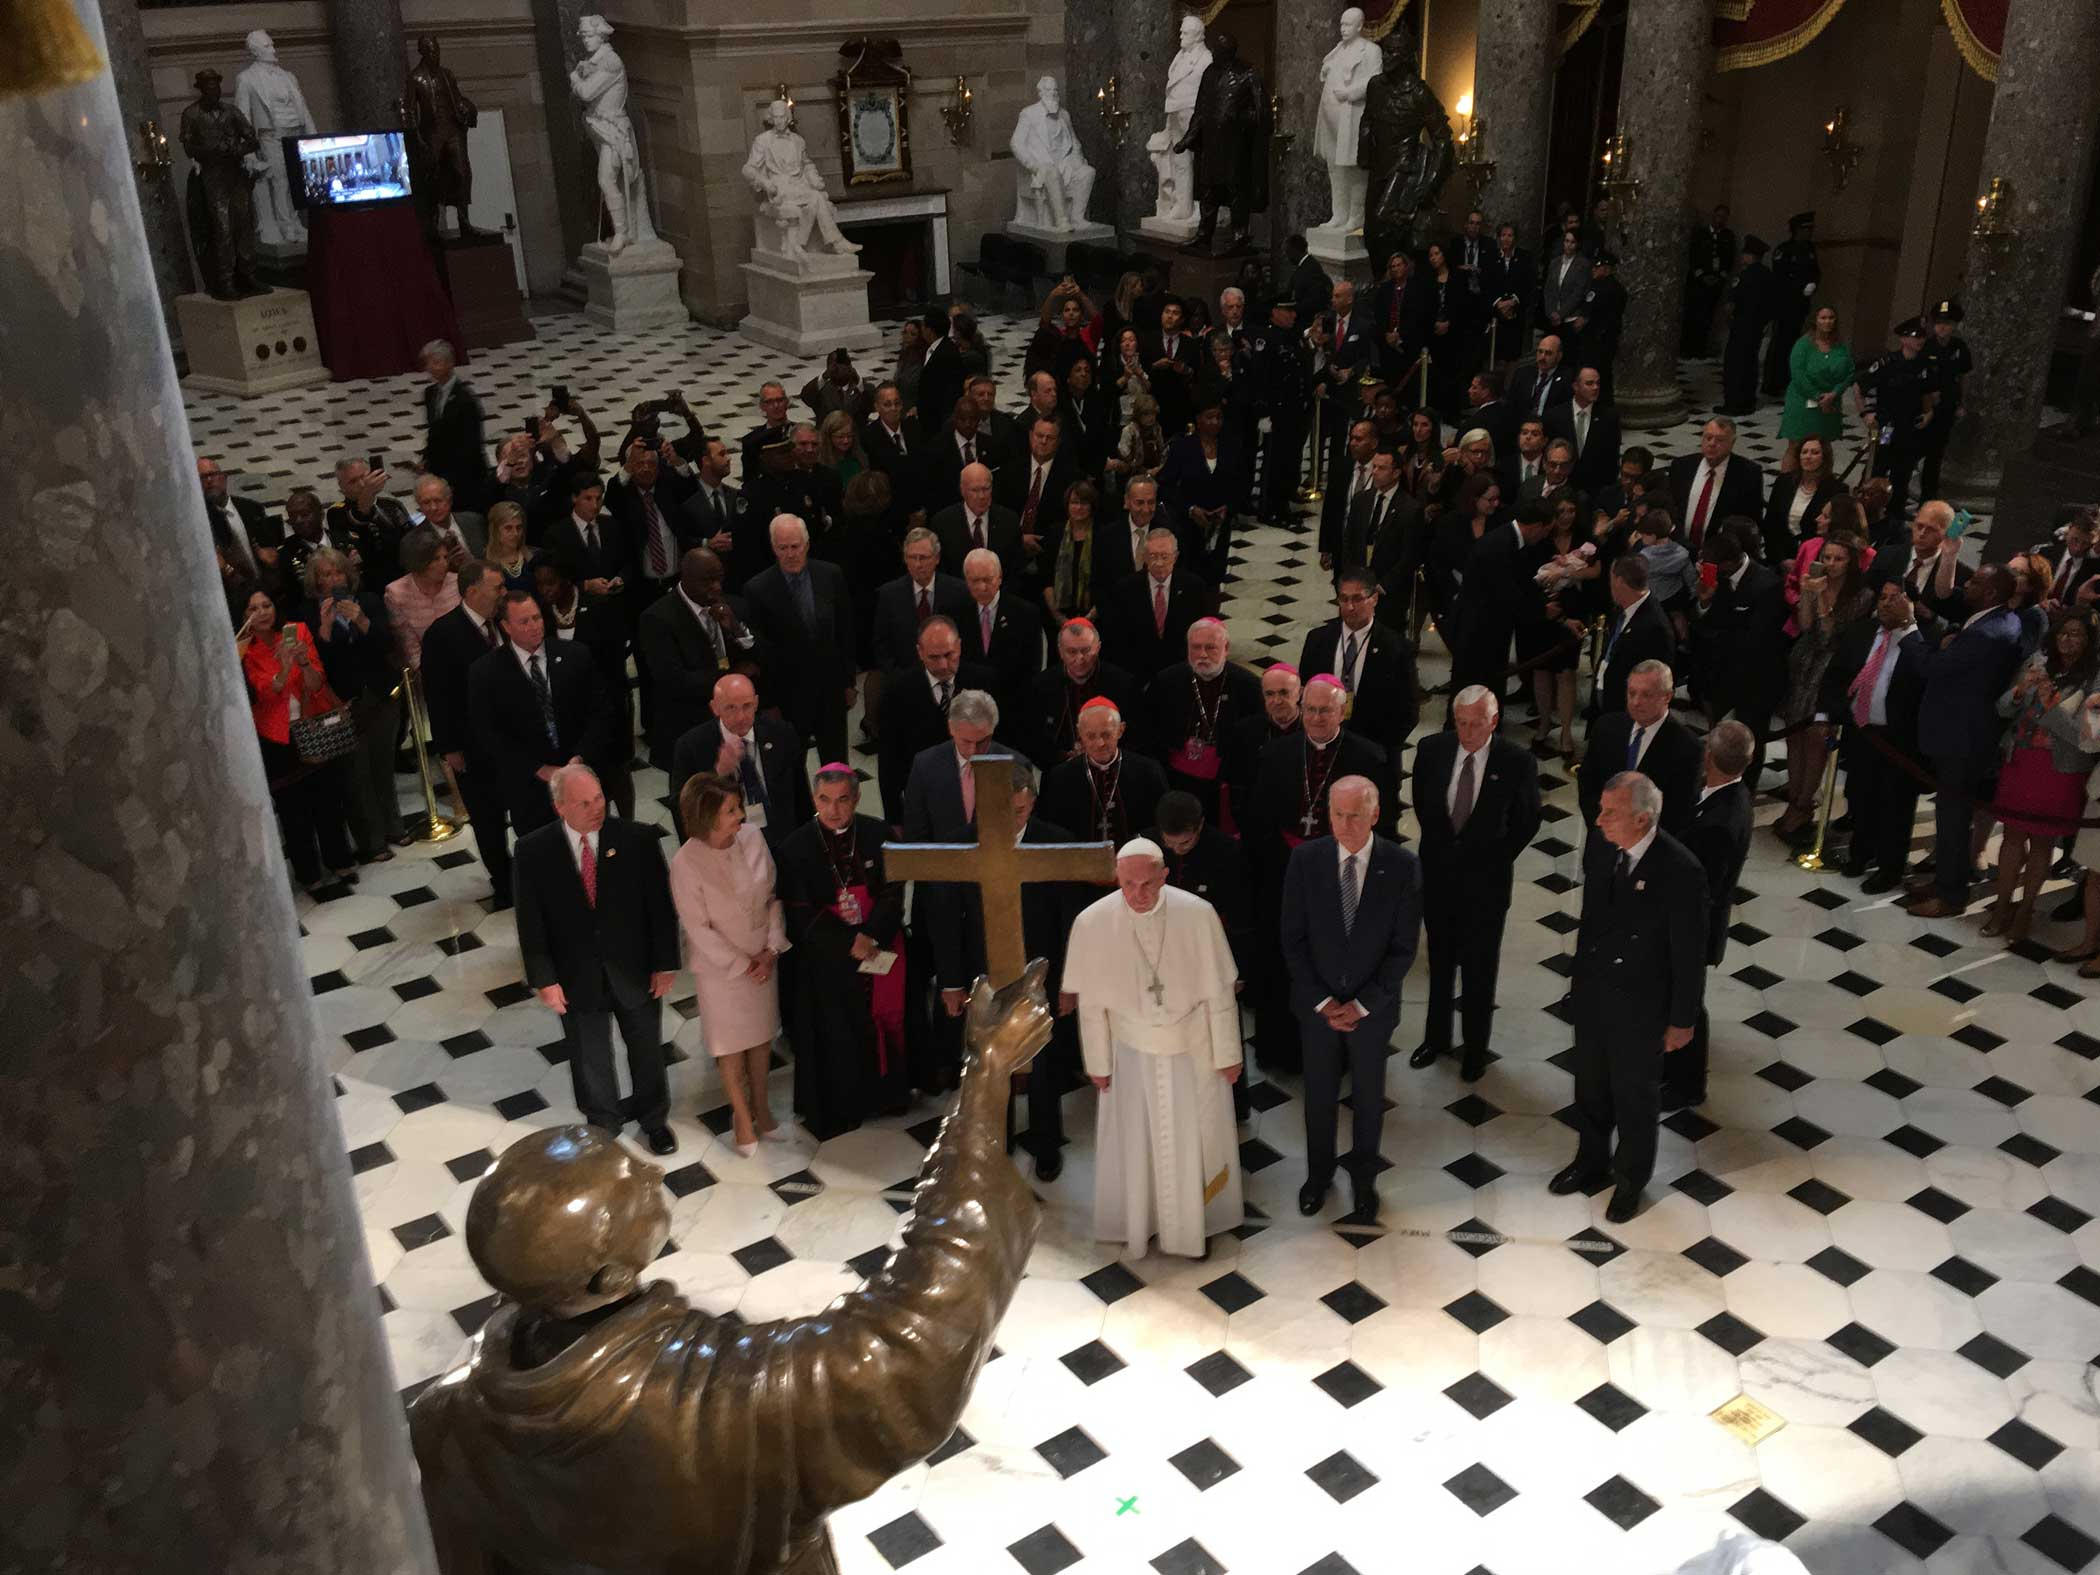 Pope Francis at the Capitol in Washington D.C., Sept. 24, 2015.